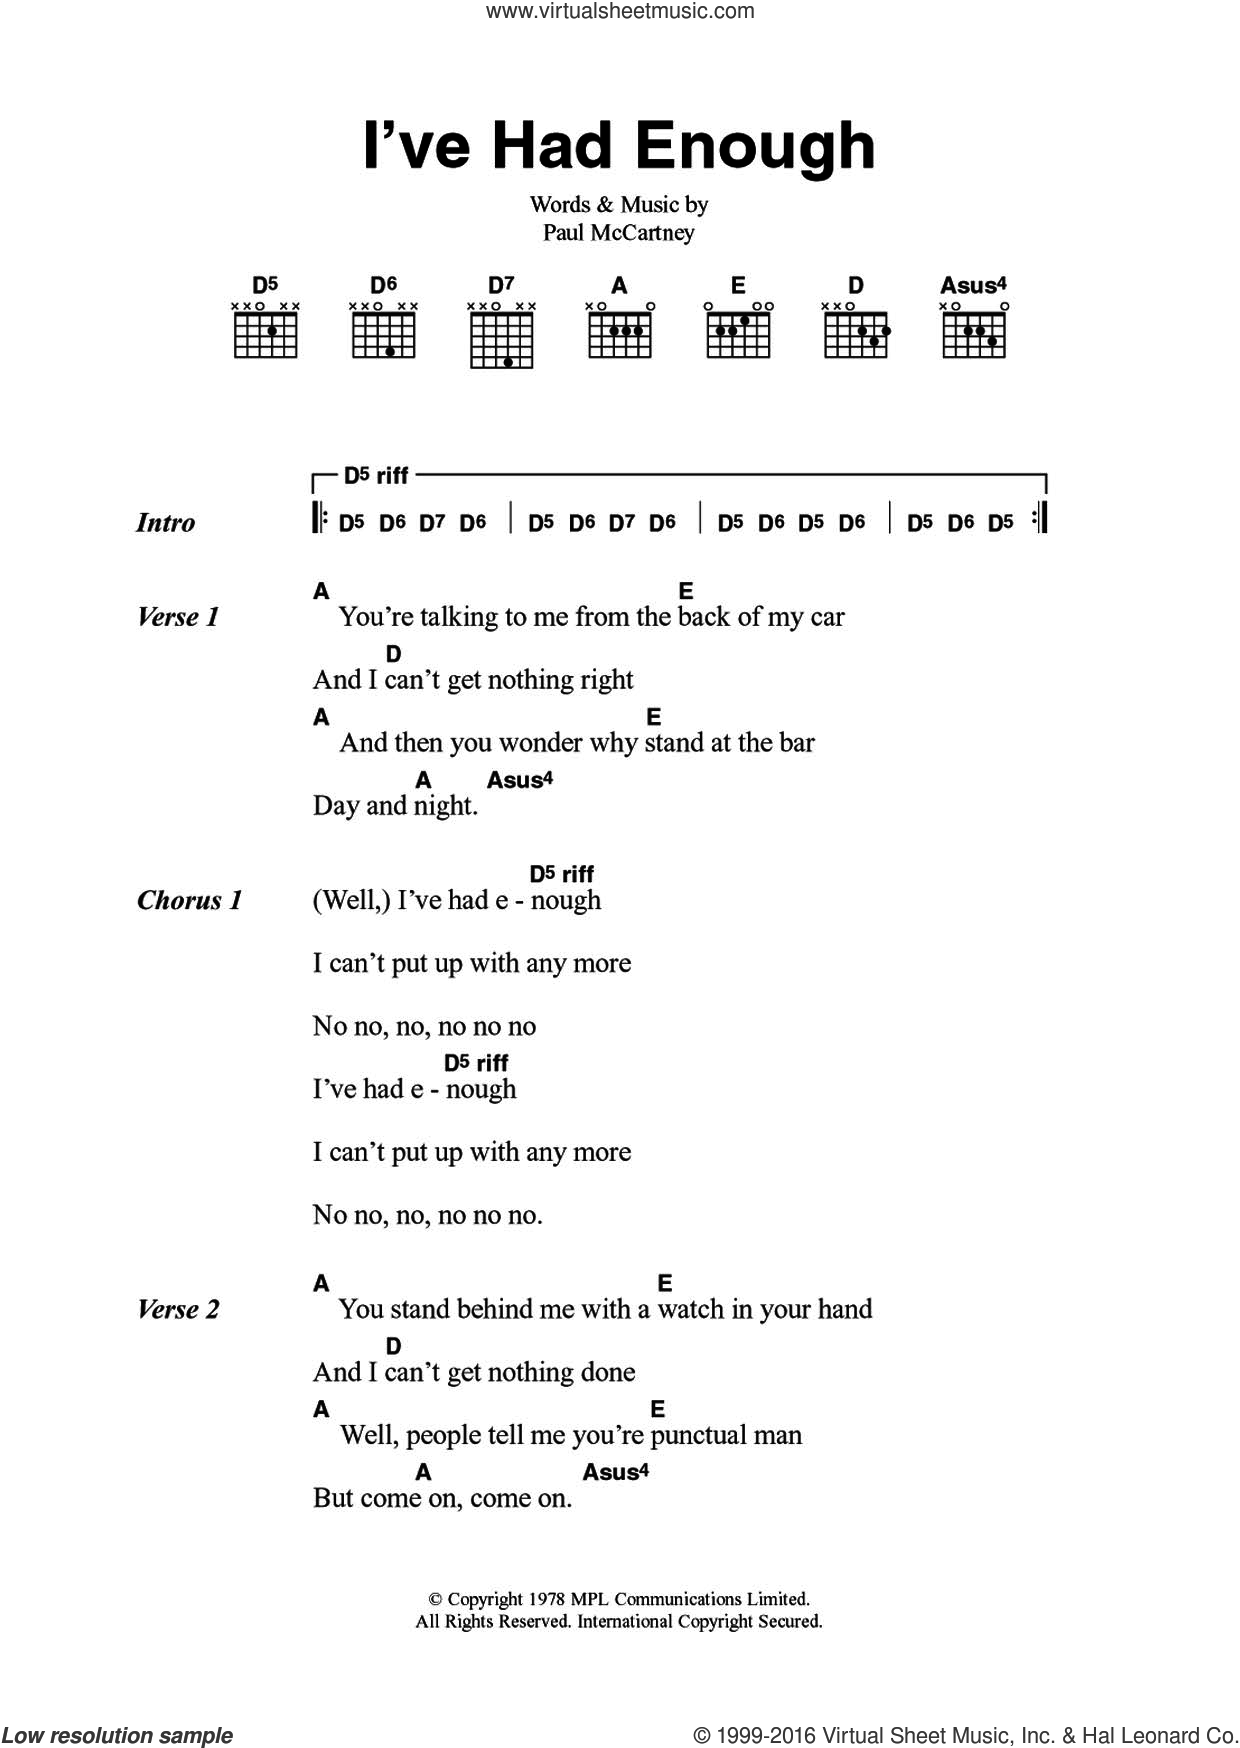 I've Had Enough sheet music for guitar (chords) by Wings